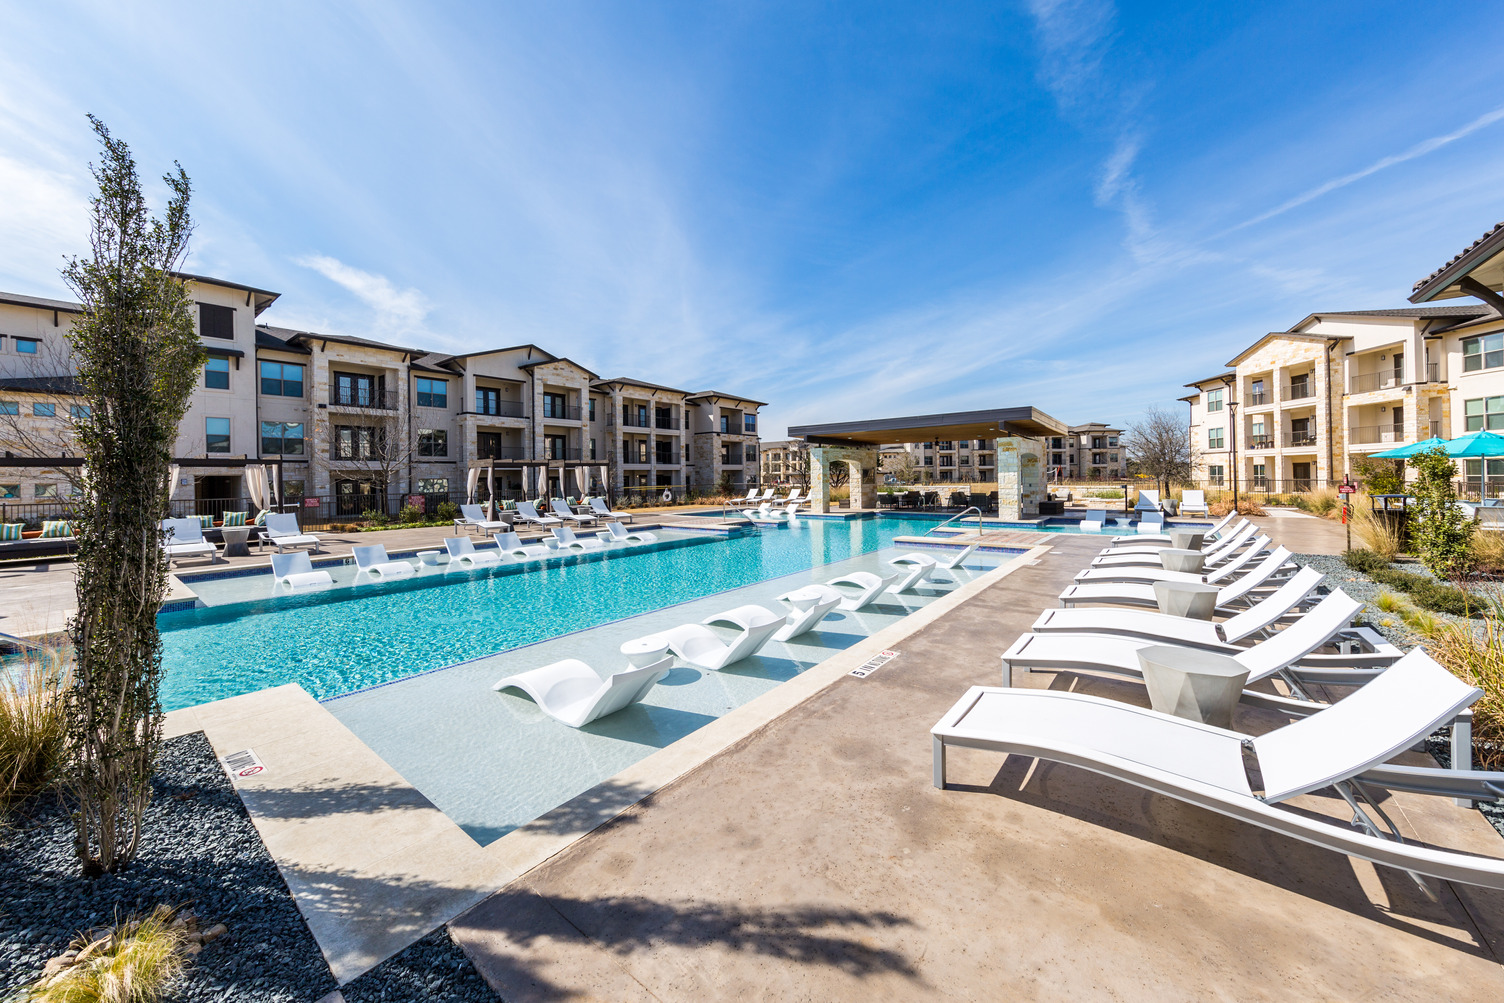 Swimming pool courtyard and in-pool loungers and additional seating